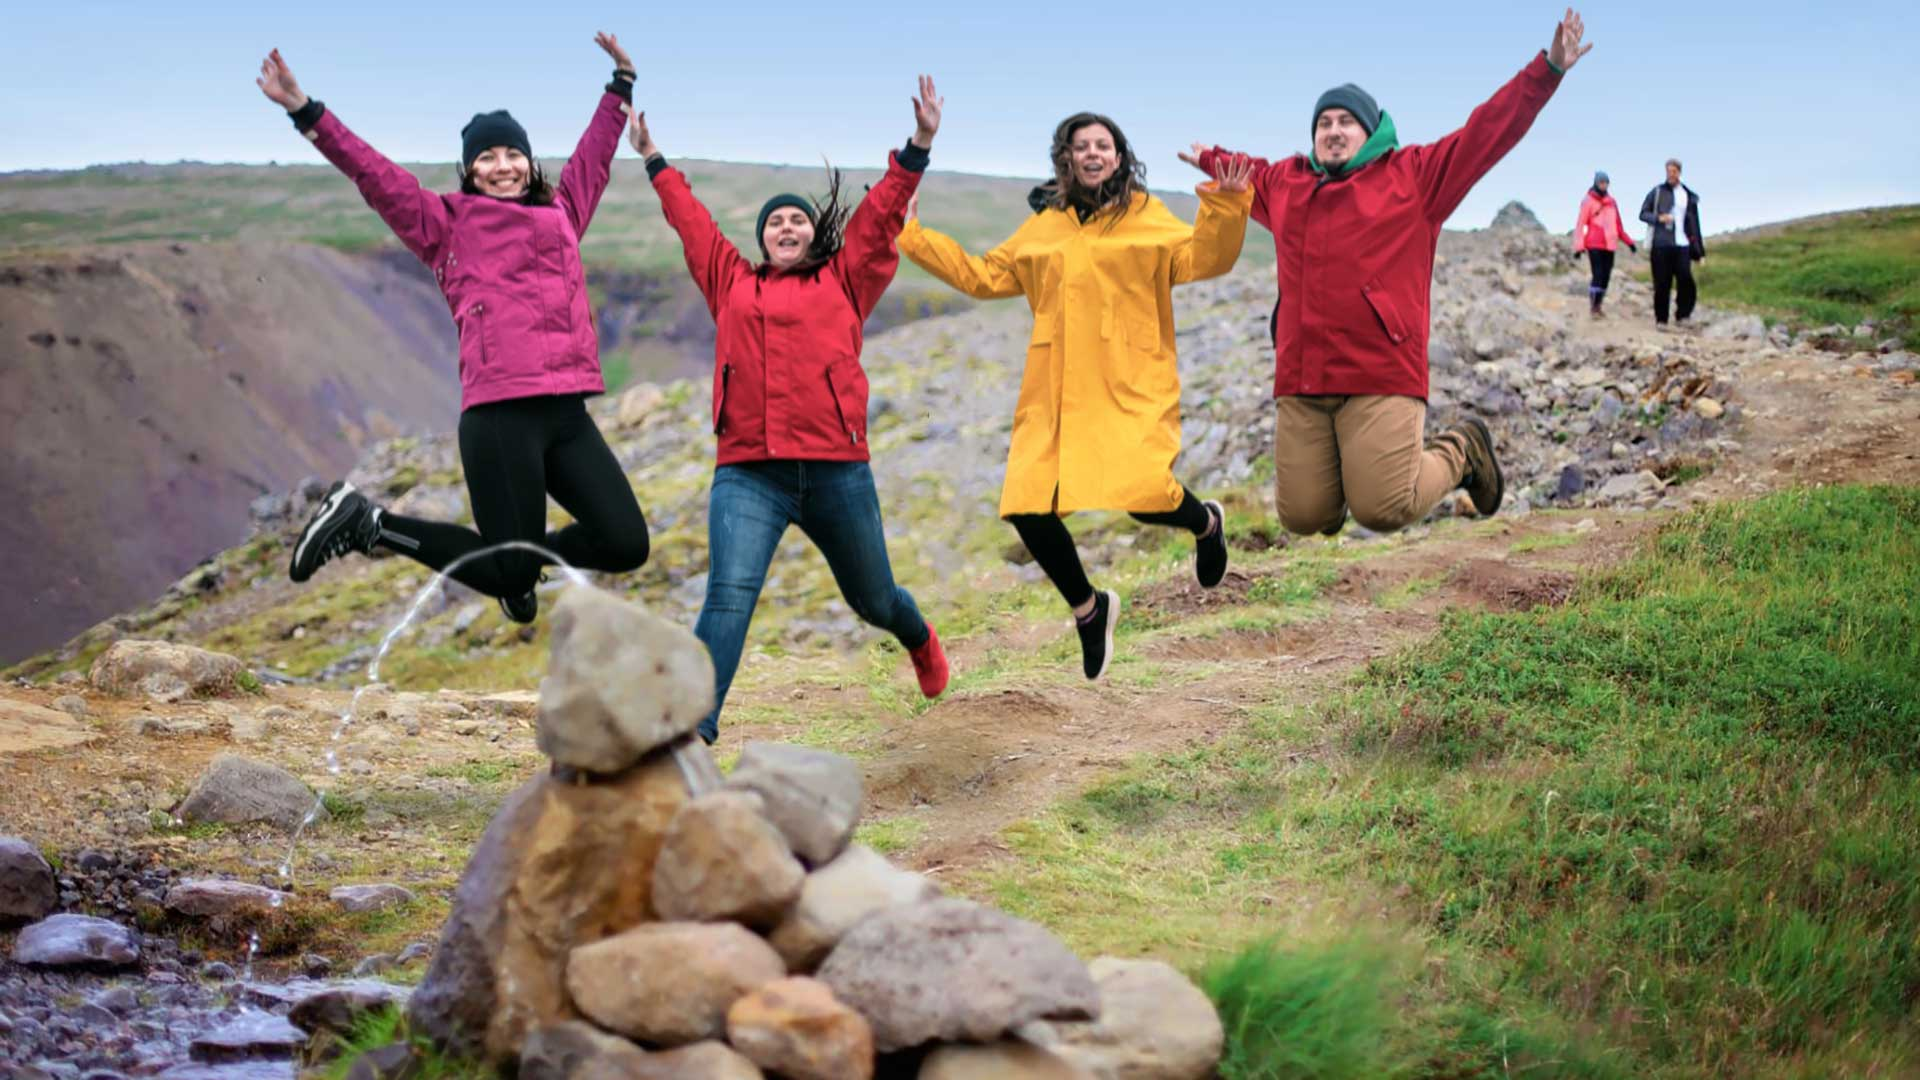 A group of friends jumping into the air after a wonderful hike in Húsafell